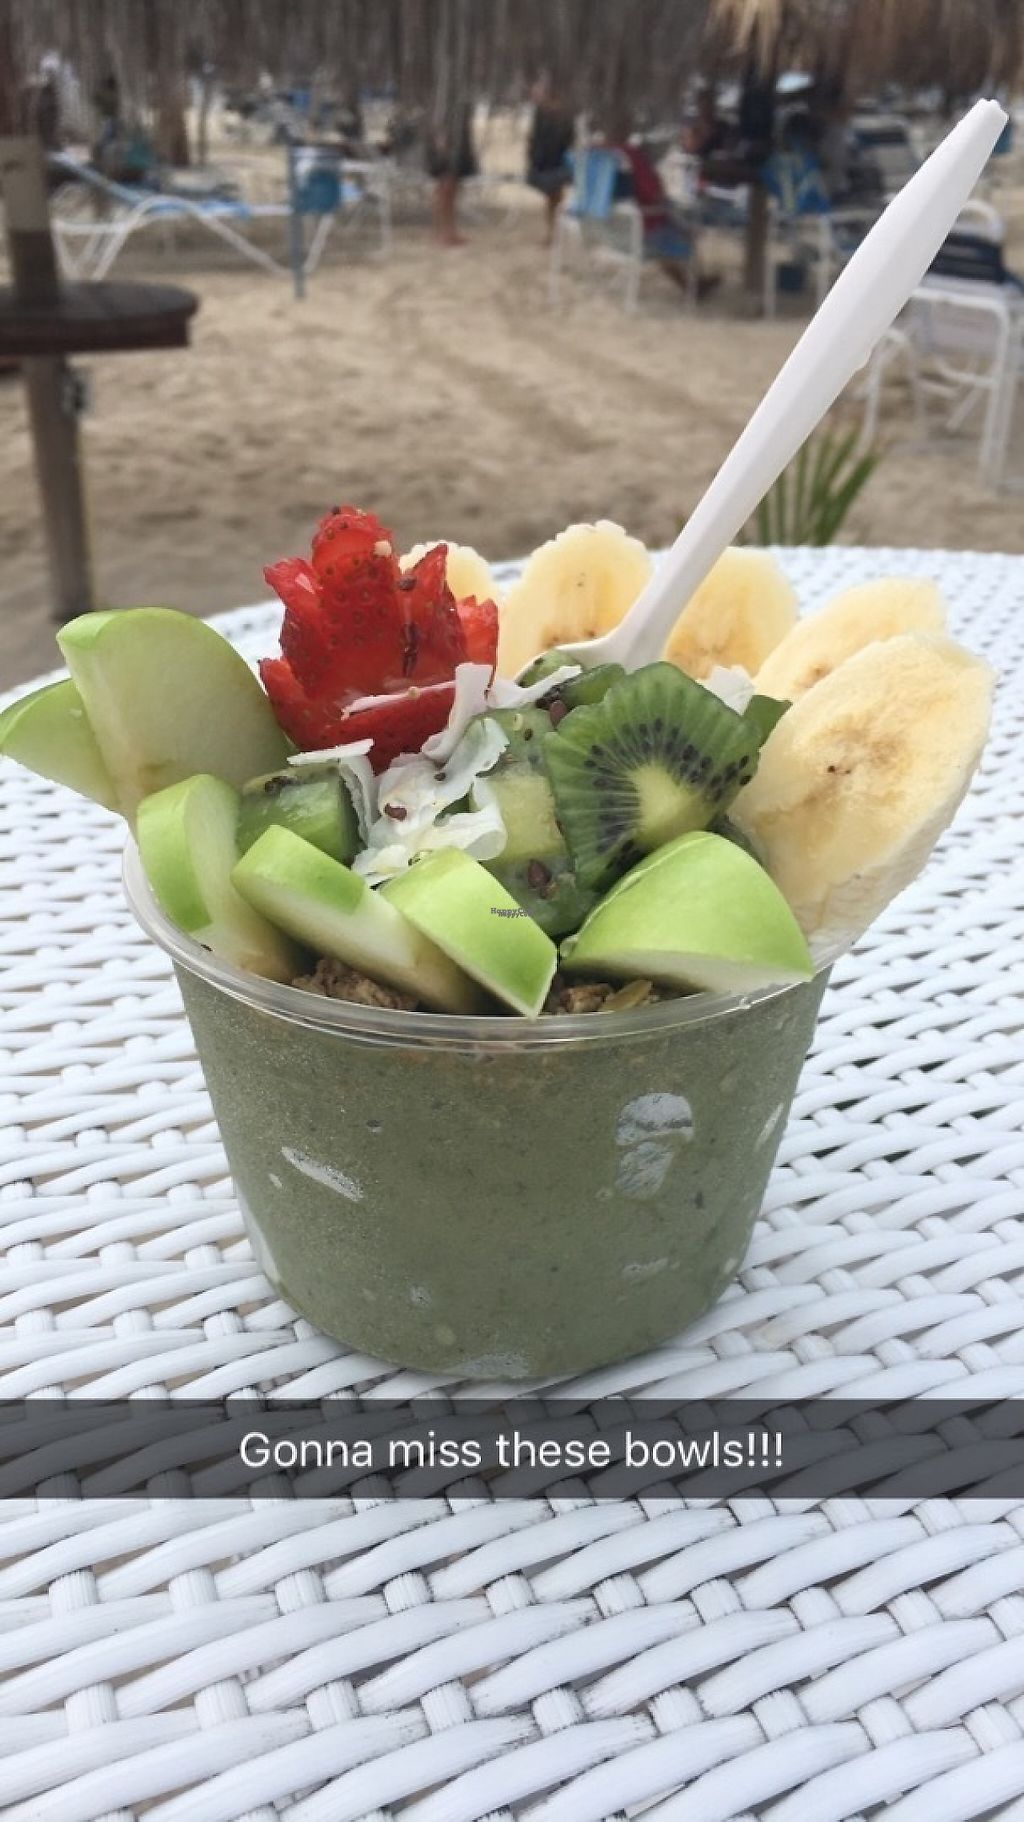 "Photo of Eduardo's Beach Shack  by <a href=""/members/profile/Farmaroundthebend"">Farmaroundthebend</a> <br/>Matcha bowl <br/> December 13, 2016  - <a href='/contact/abuse/image/79459/200685'>Report</a>"